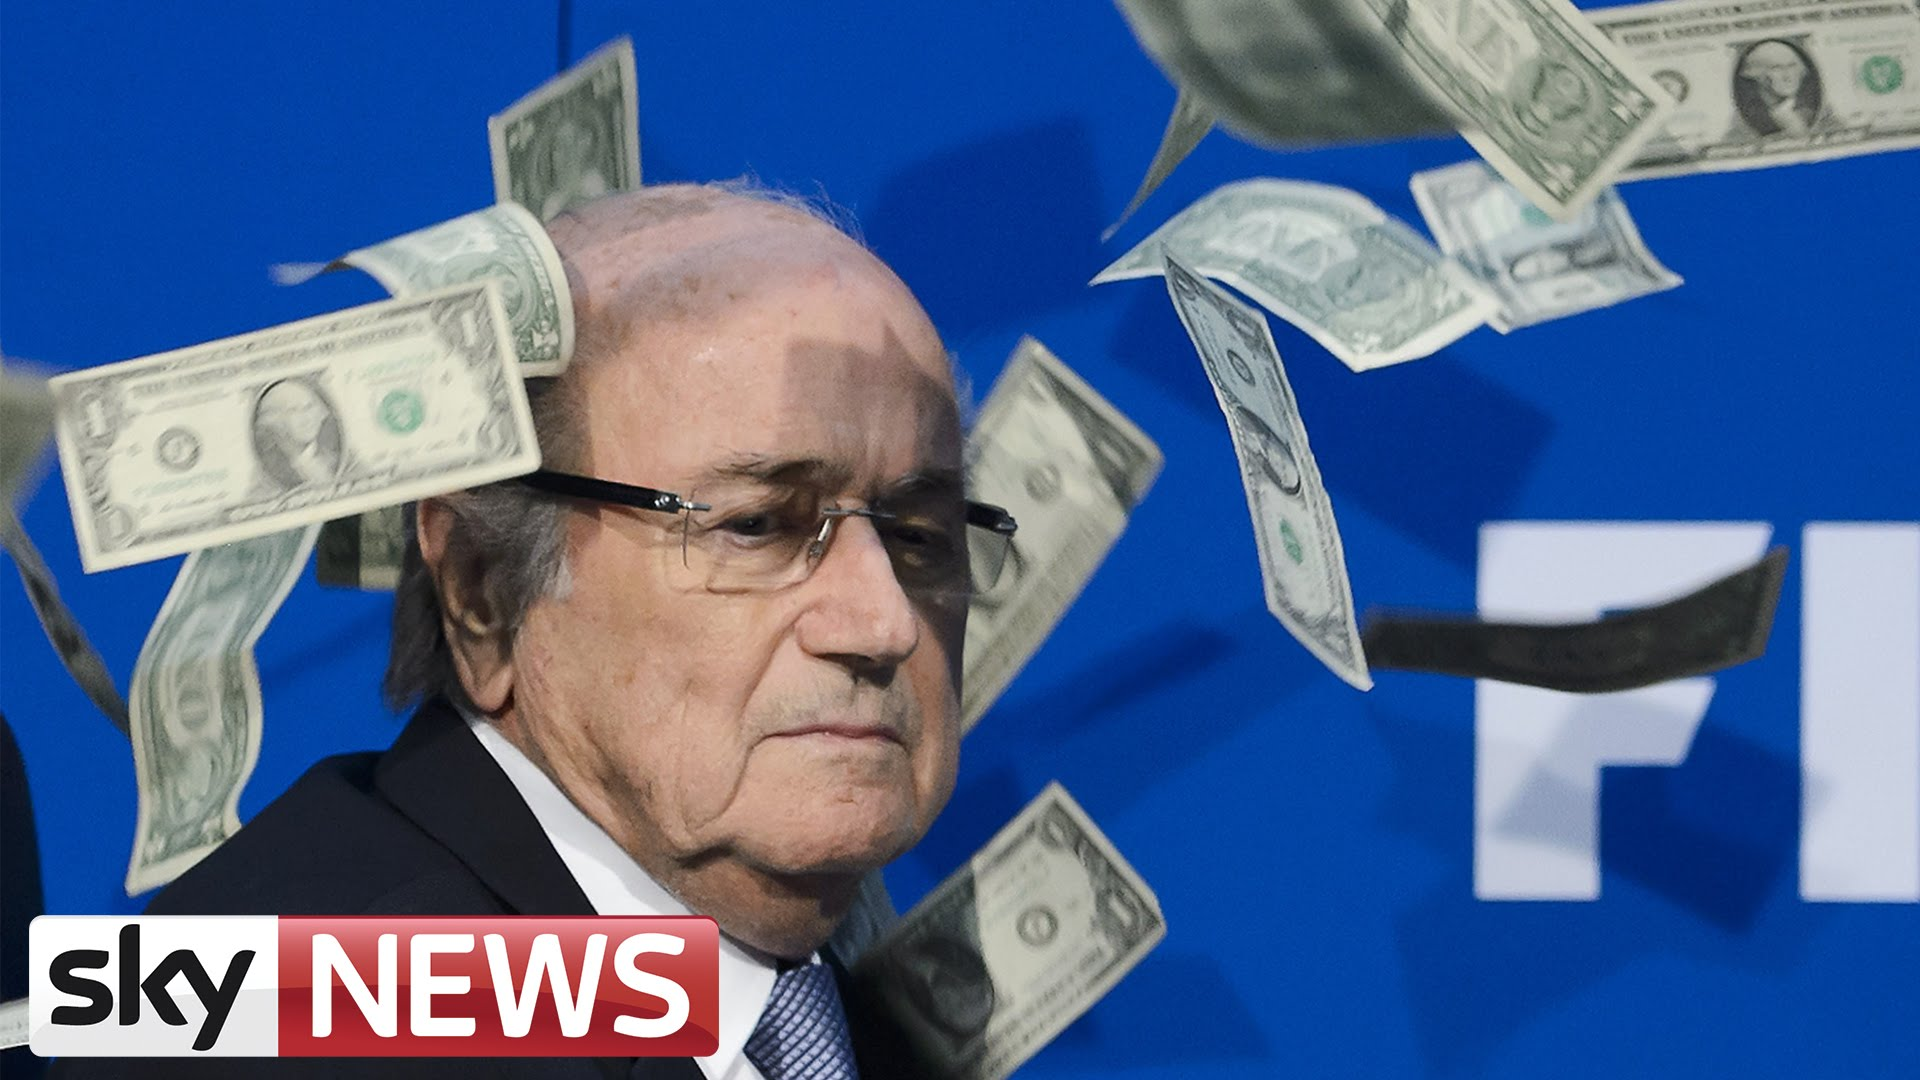 Comedian Simon Brodkin showers FIFA President Sepp Blatter with cash